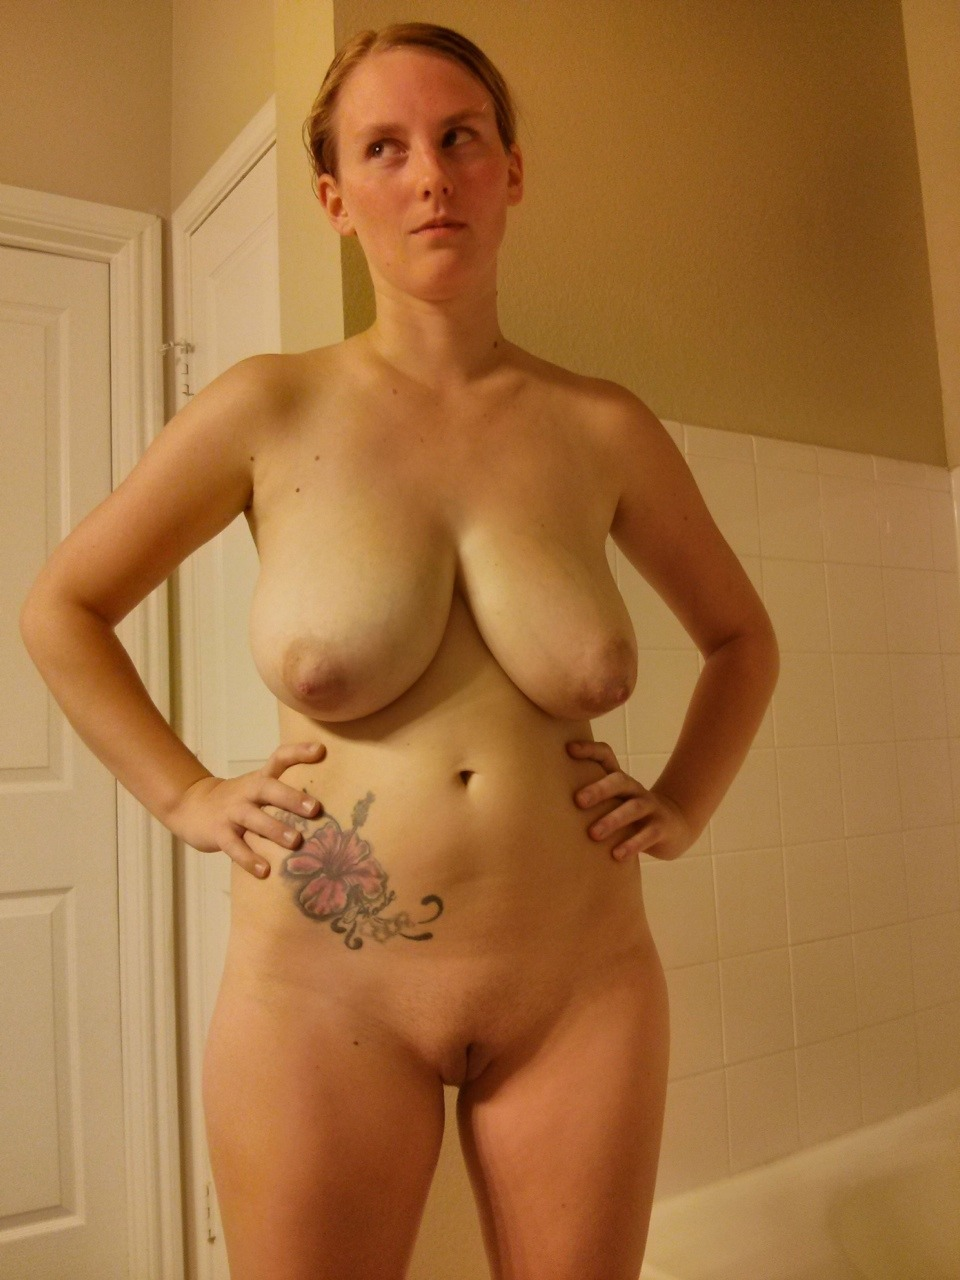 The education saggy tits nude GREAT BODY,WISH